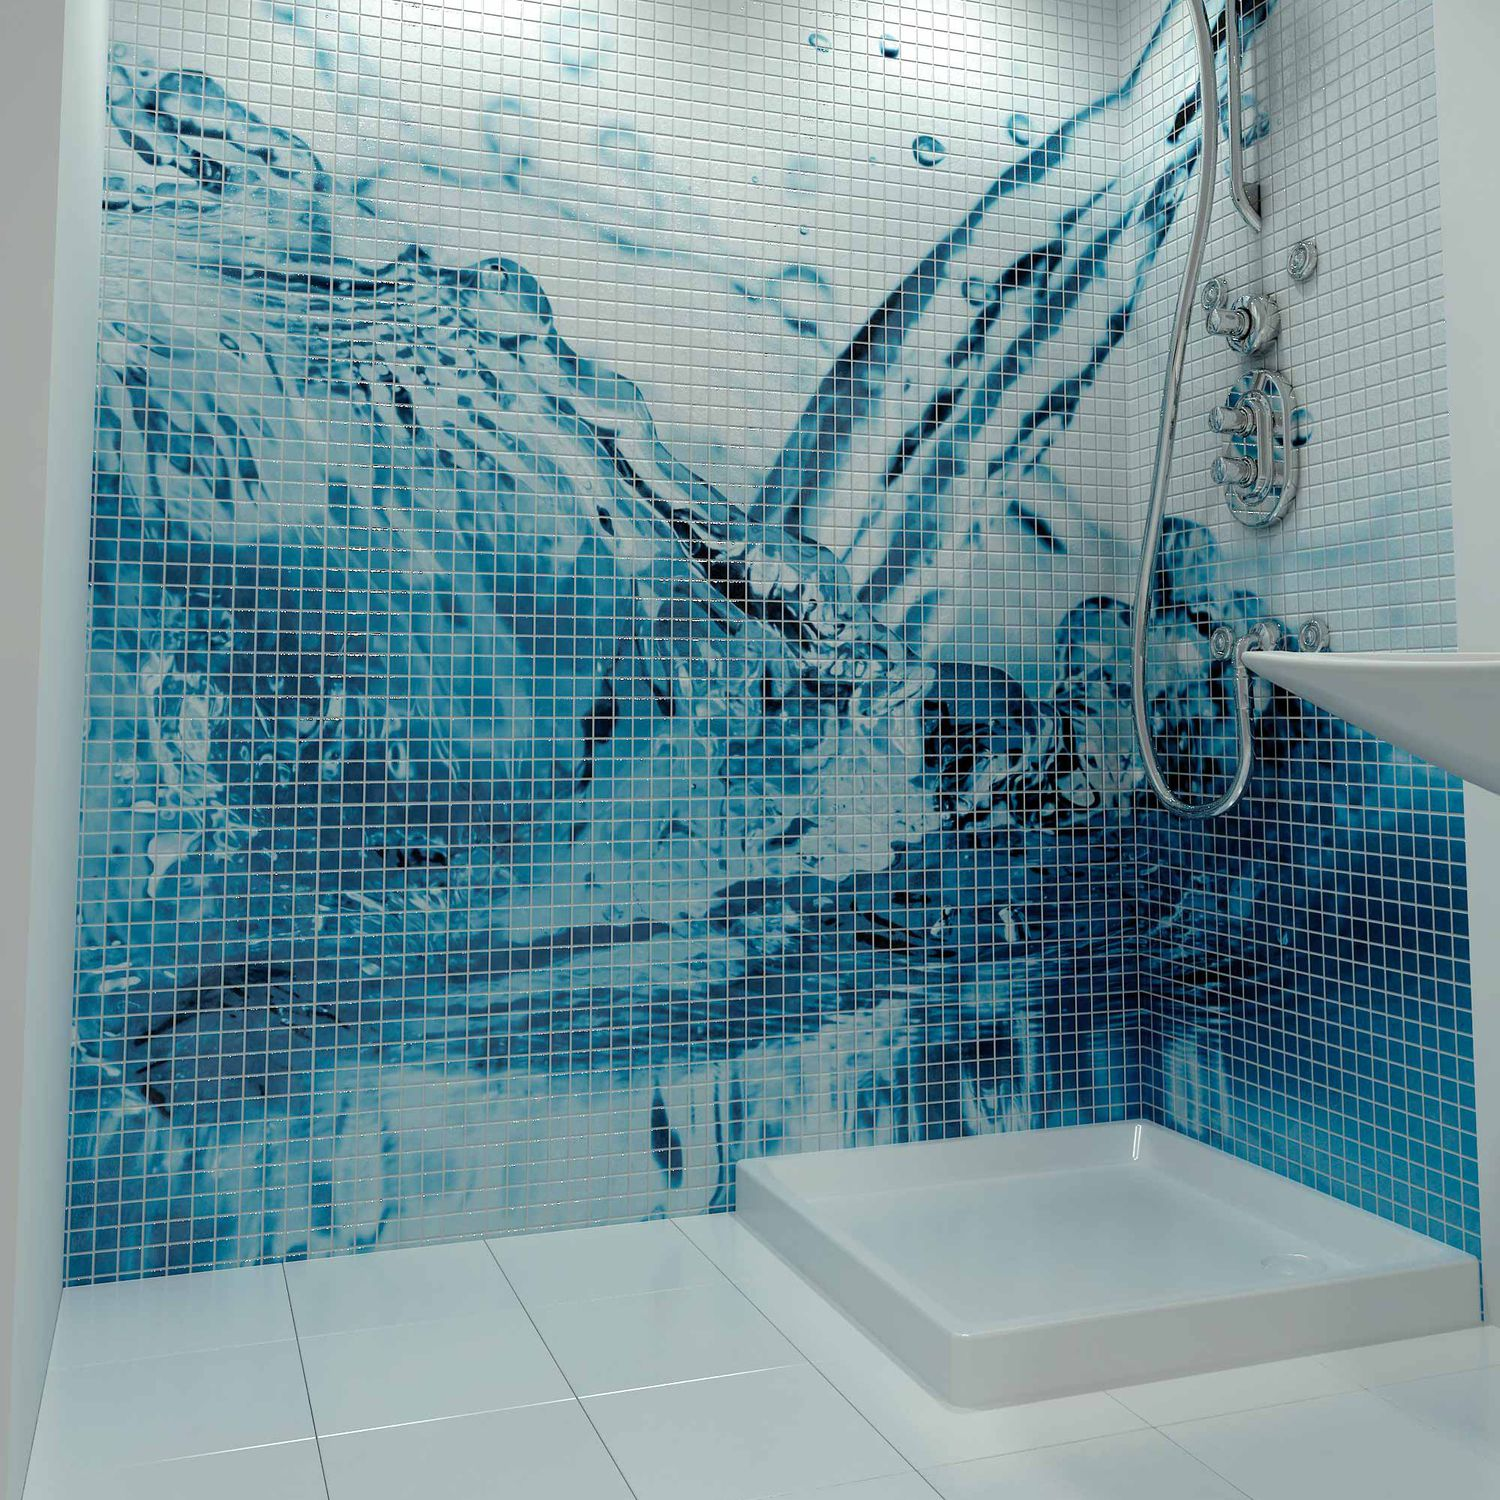 Bathroom mosaic tile / pool / wall / glass - HIGH DEFINITION - Mosavit